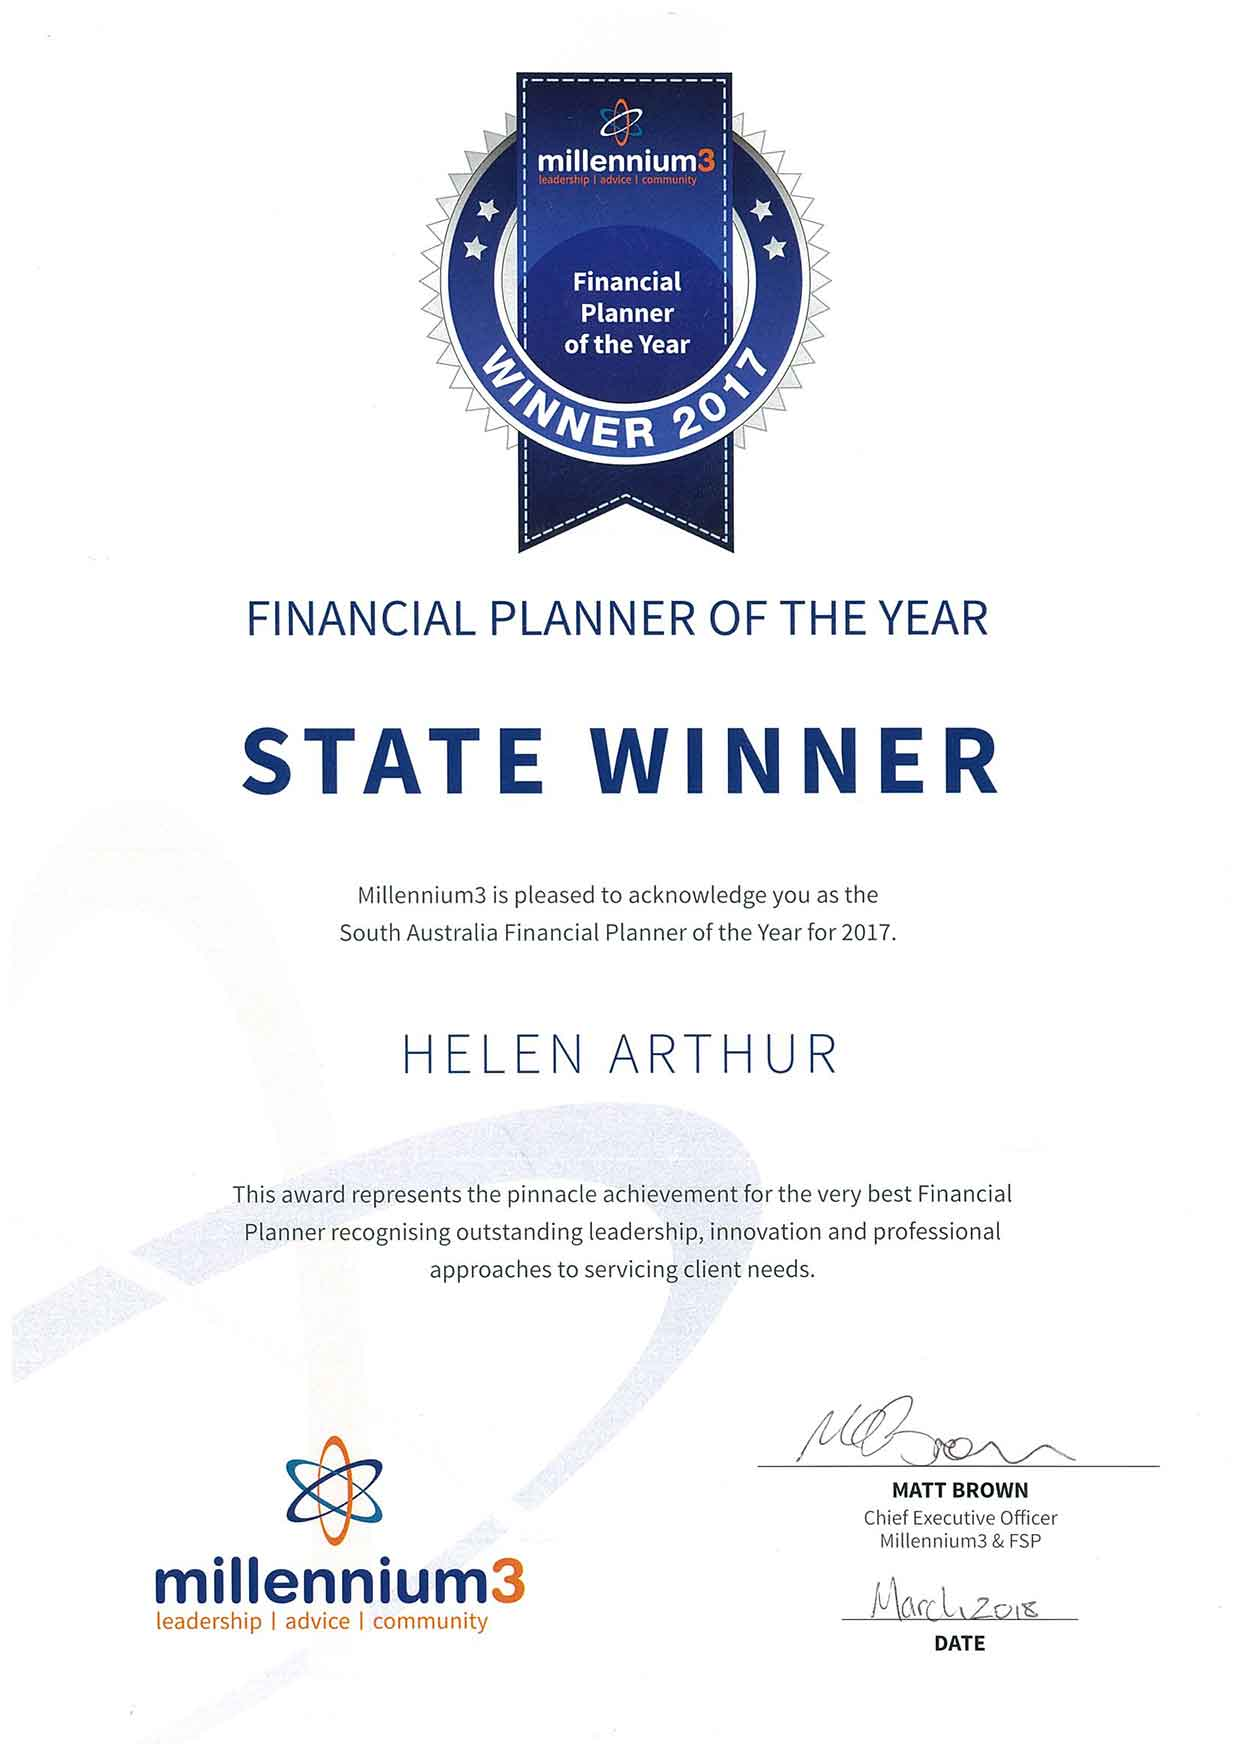 South Australian Financial Planner of the year 2017